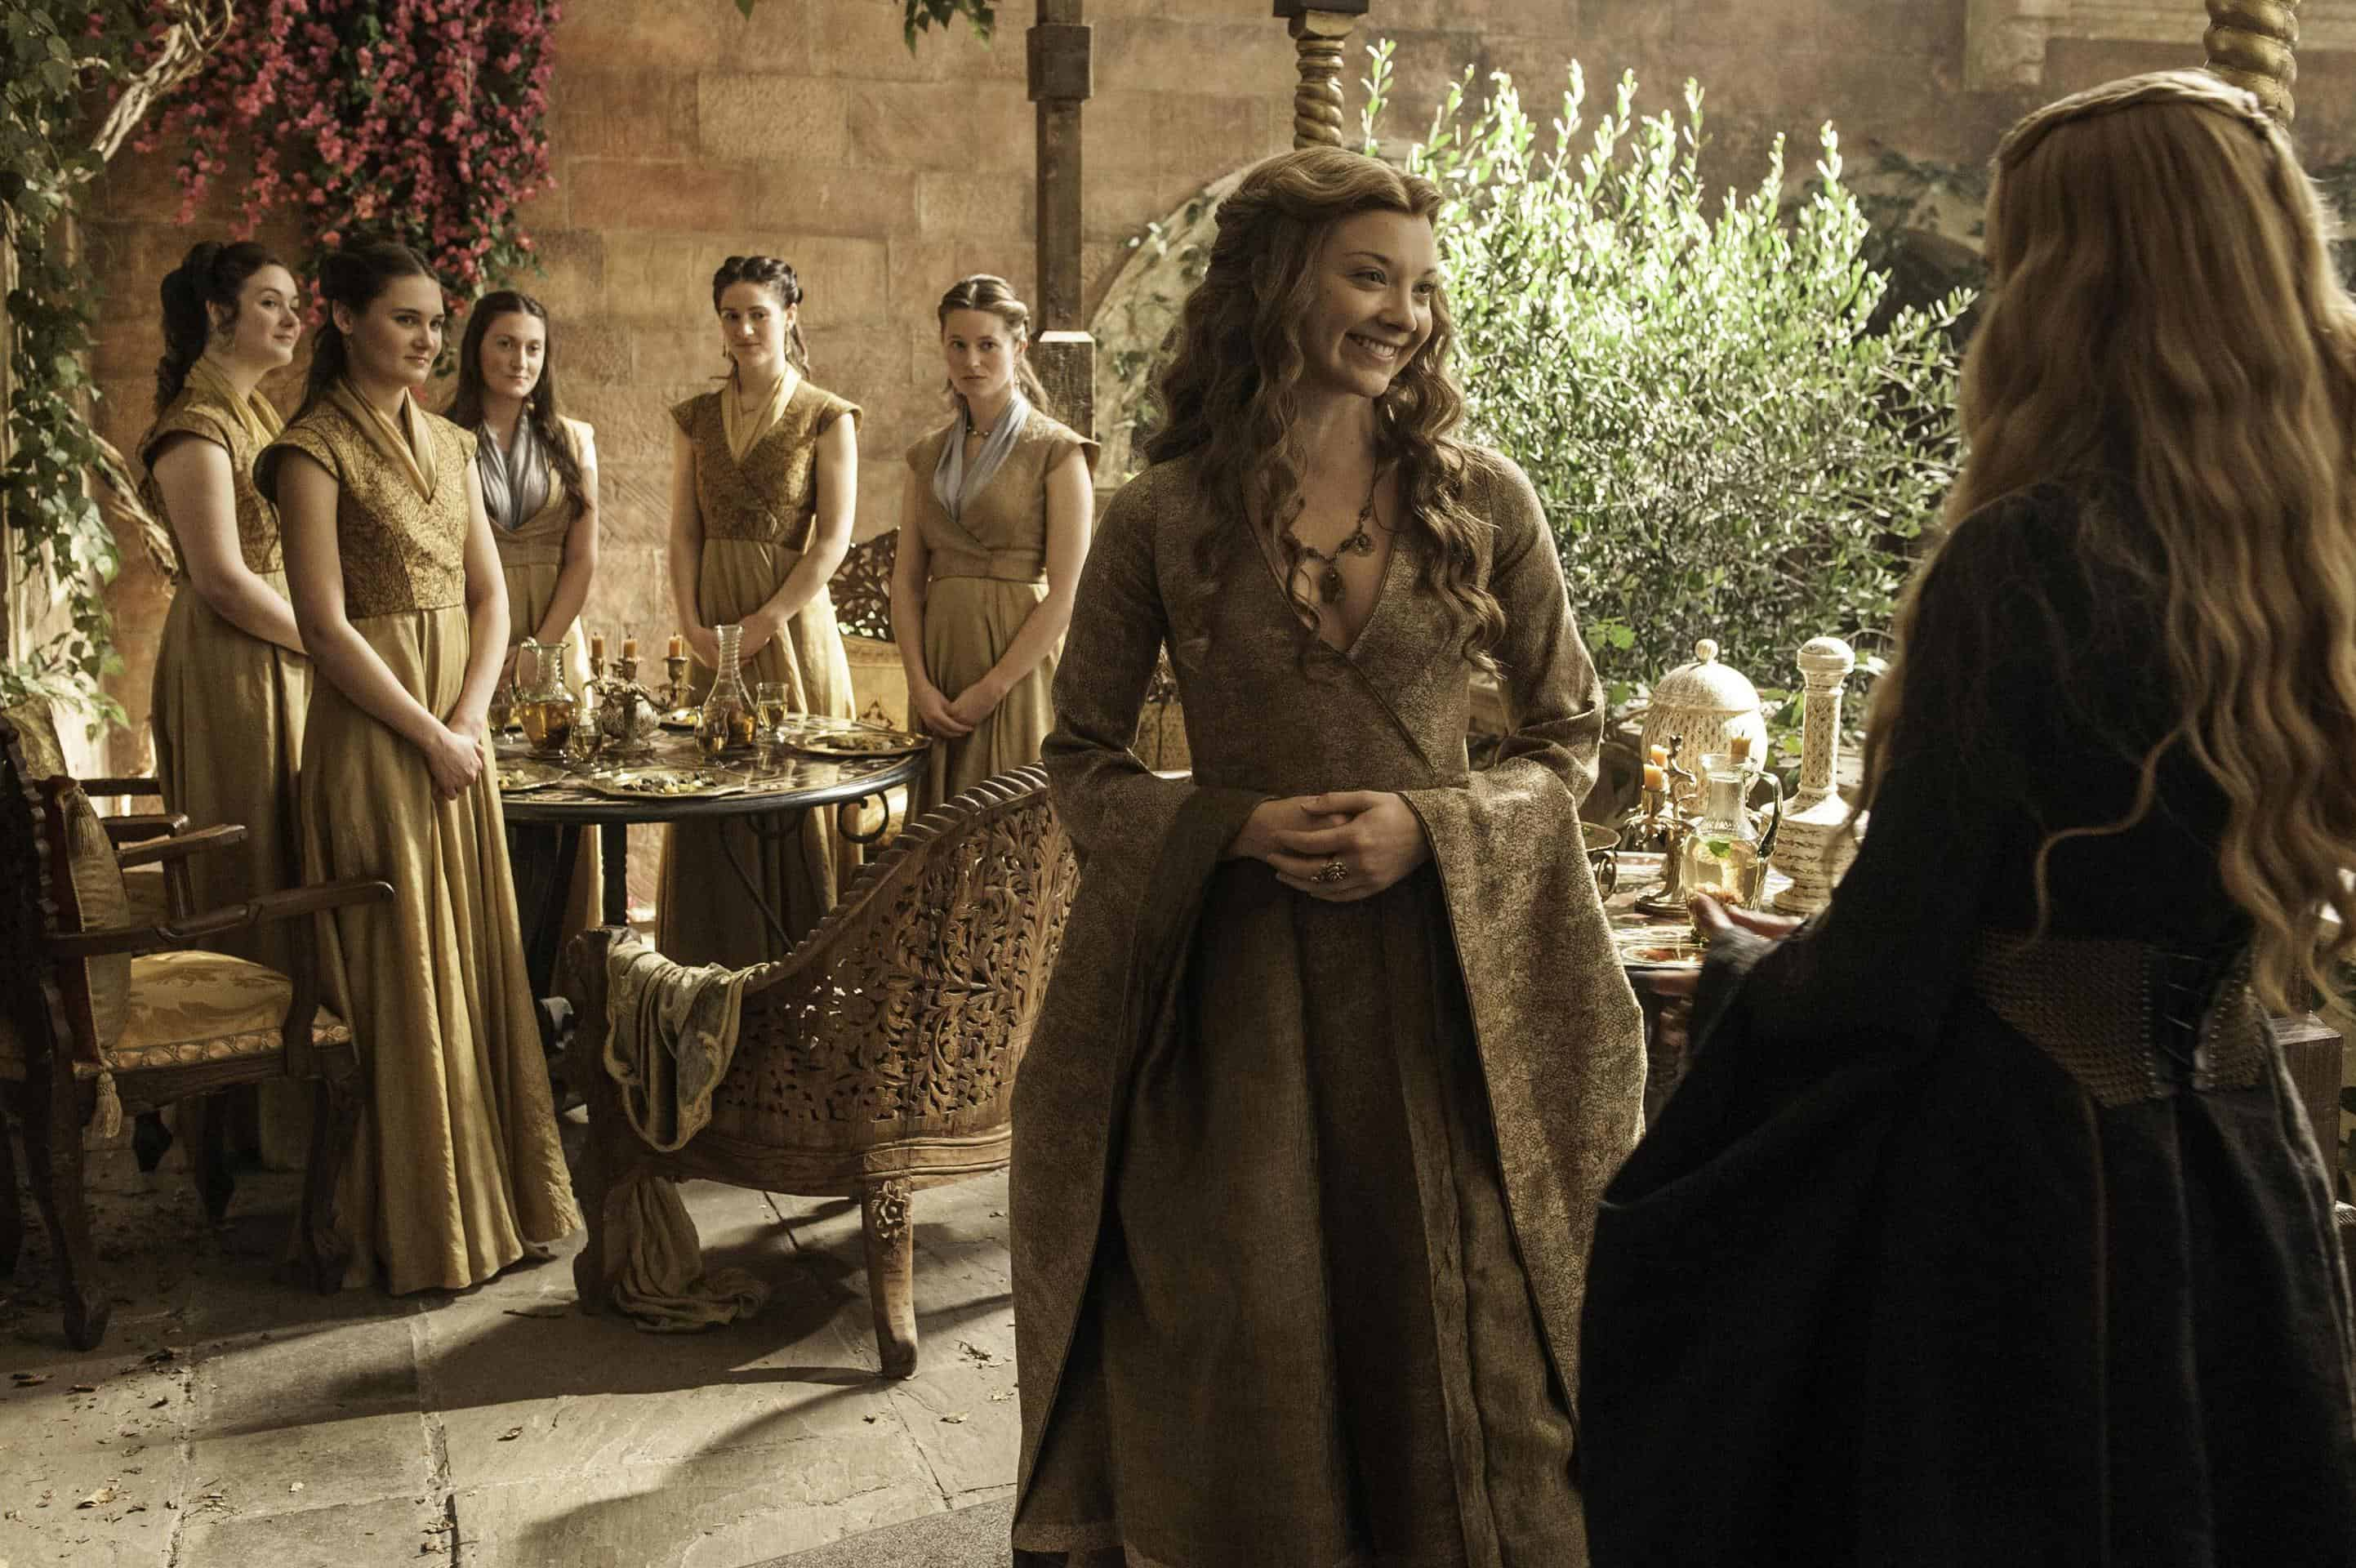 Game-of-Thrones-Season-5-Margaery-and-Cersei